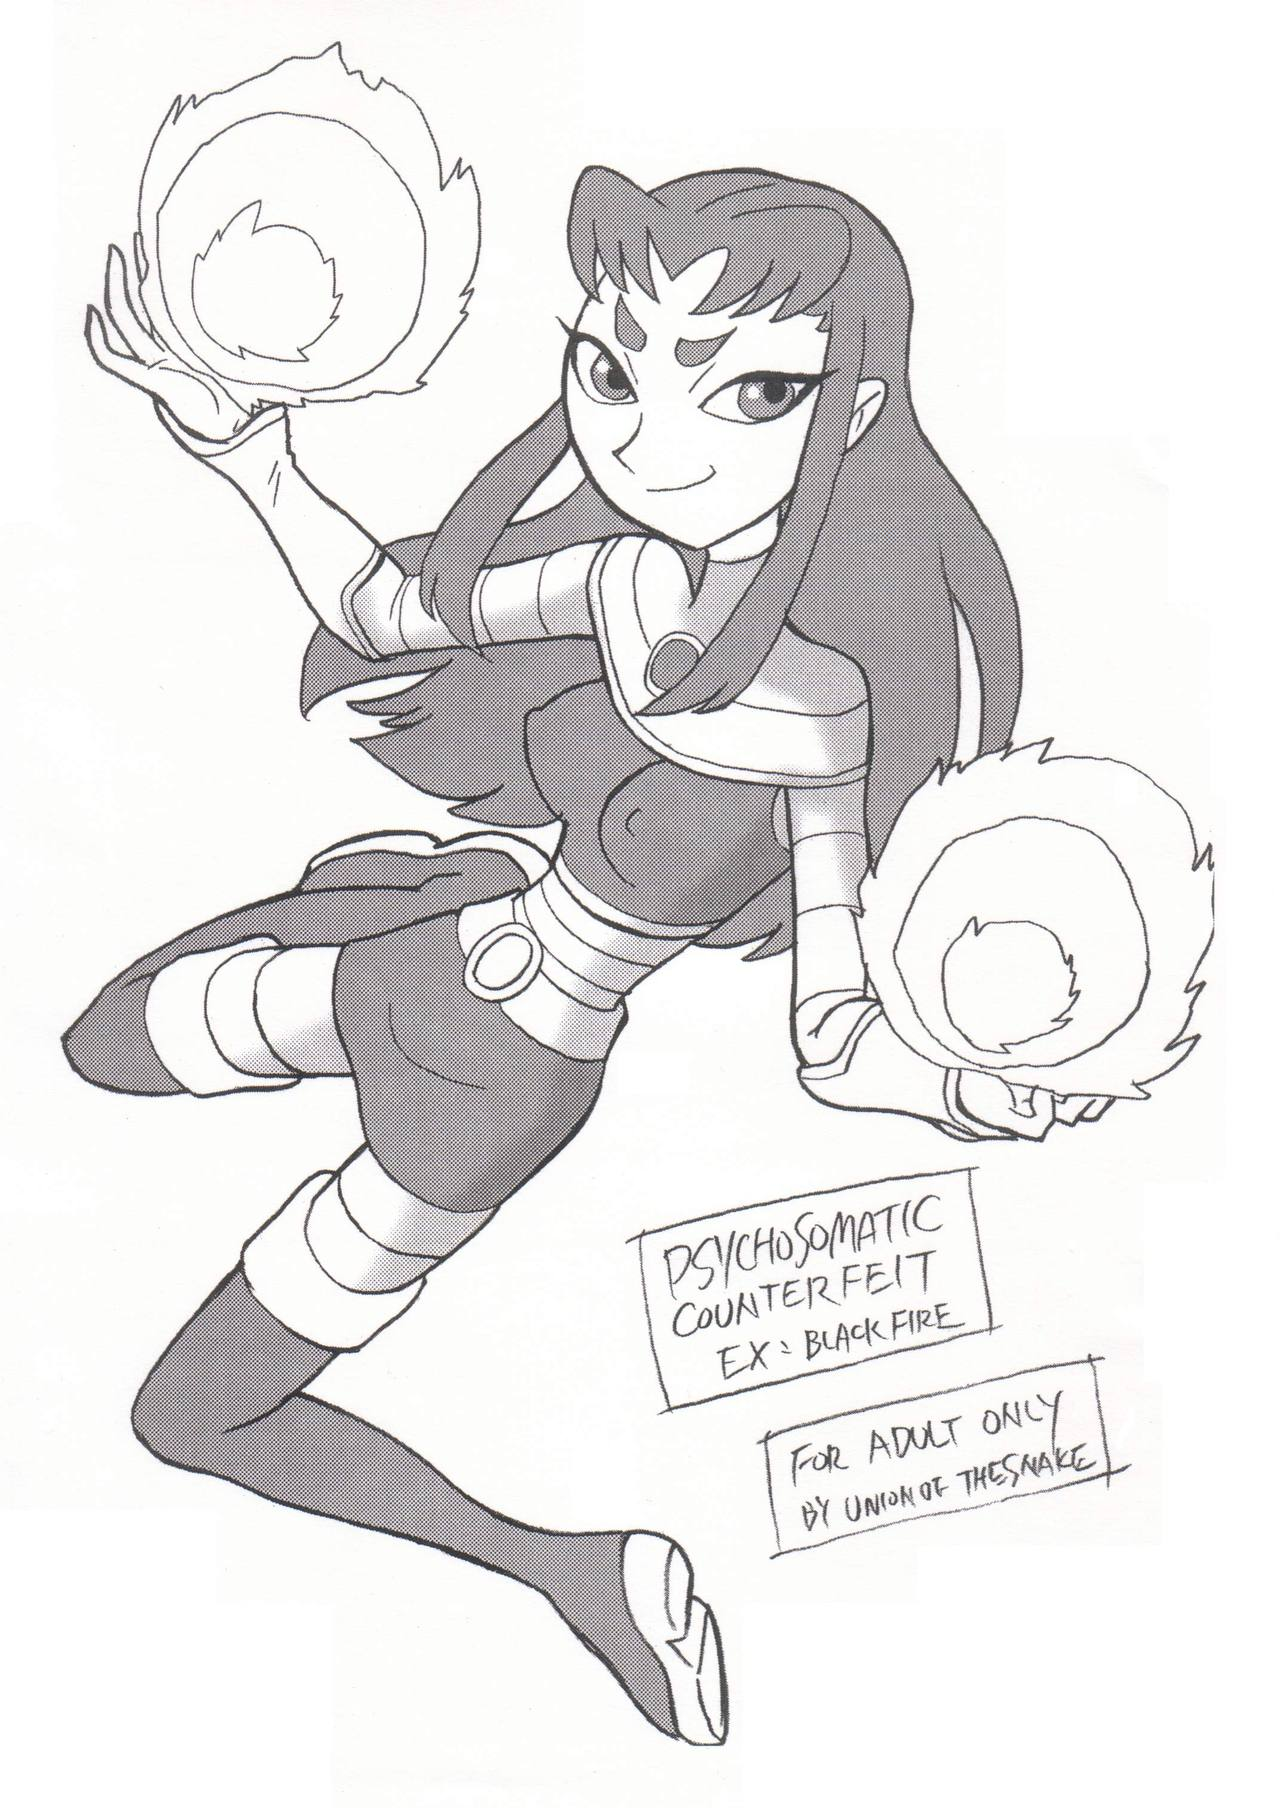 [Union Of The Snake (Shinda Mane)] Psychosomatic Counterfeit Ex: Blackfire (Teen Titans)